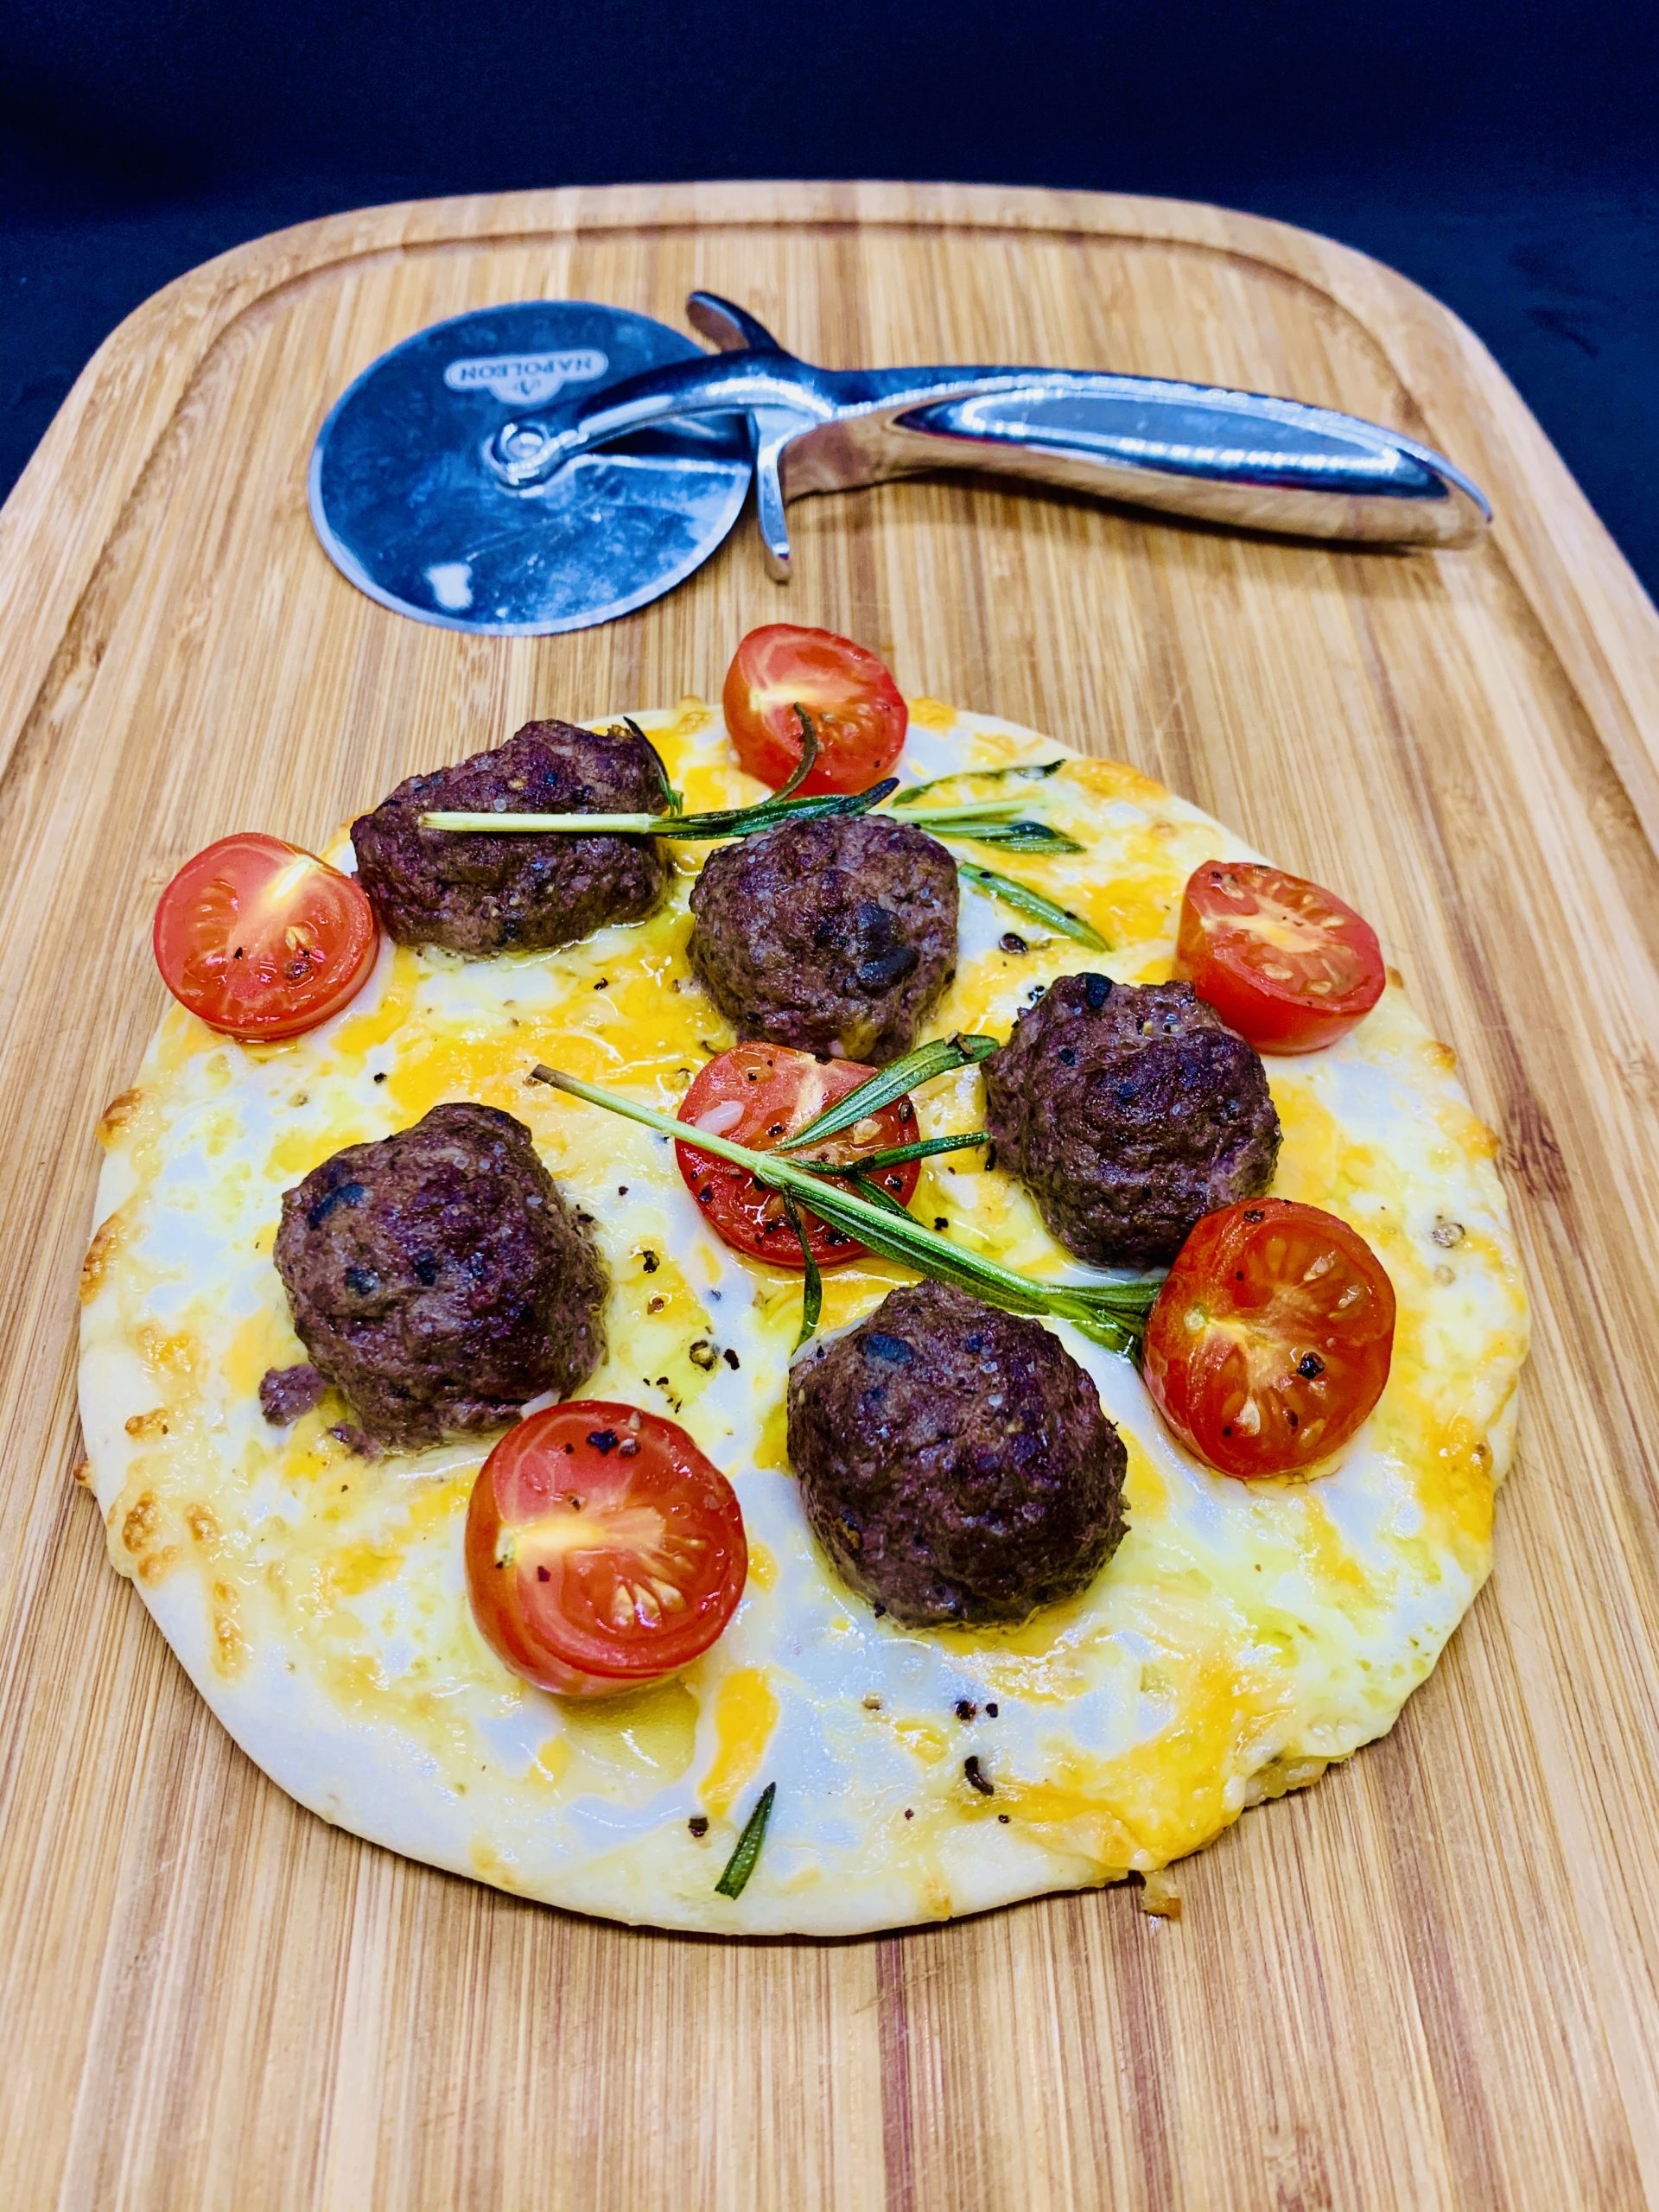 Wagyu 'w' Black Truffle Meatball Kid's Pizza